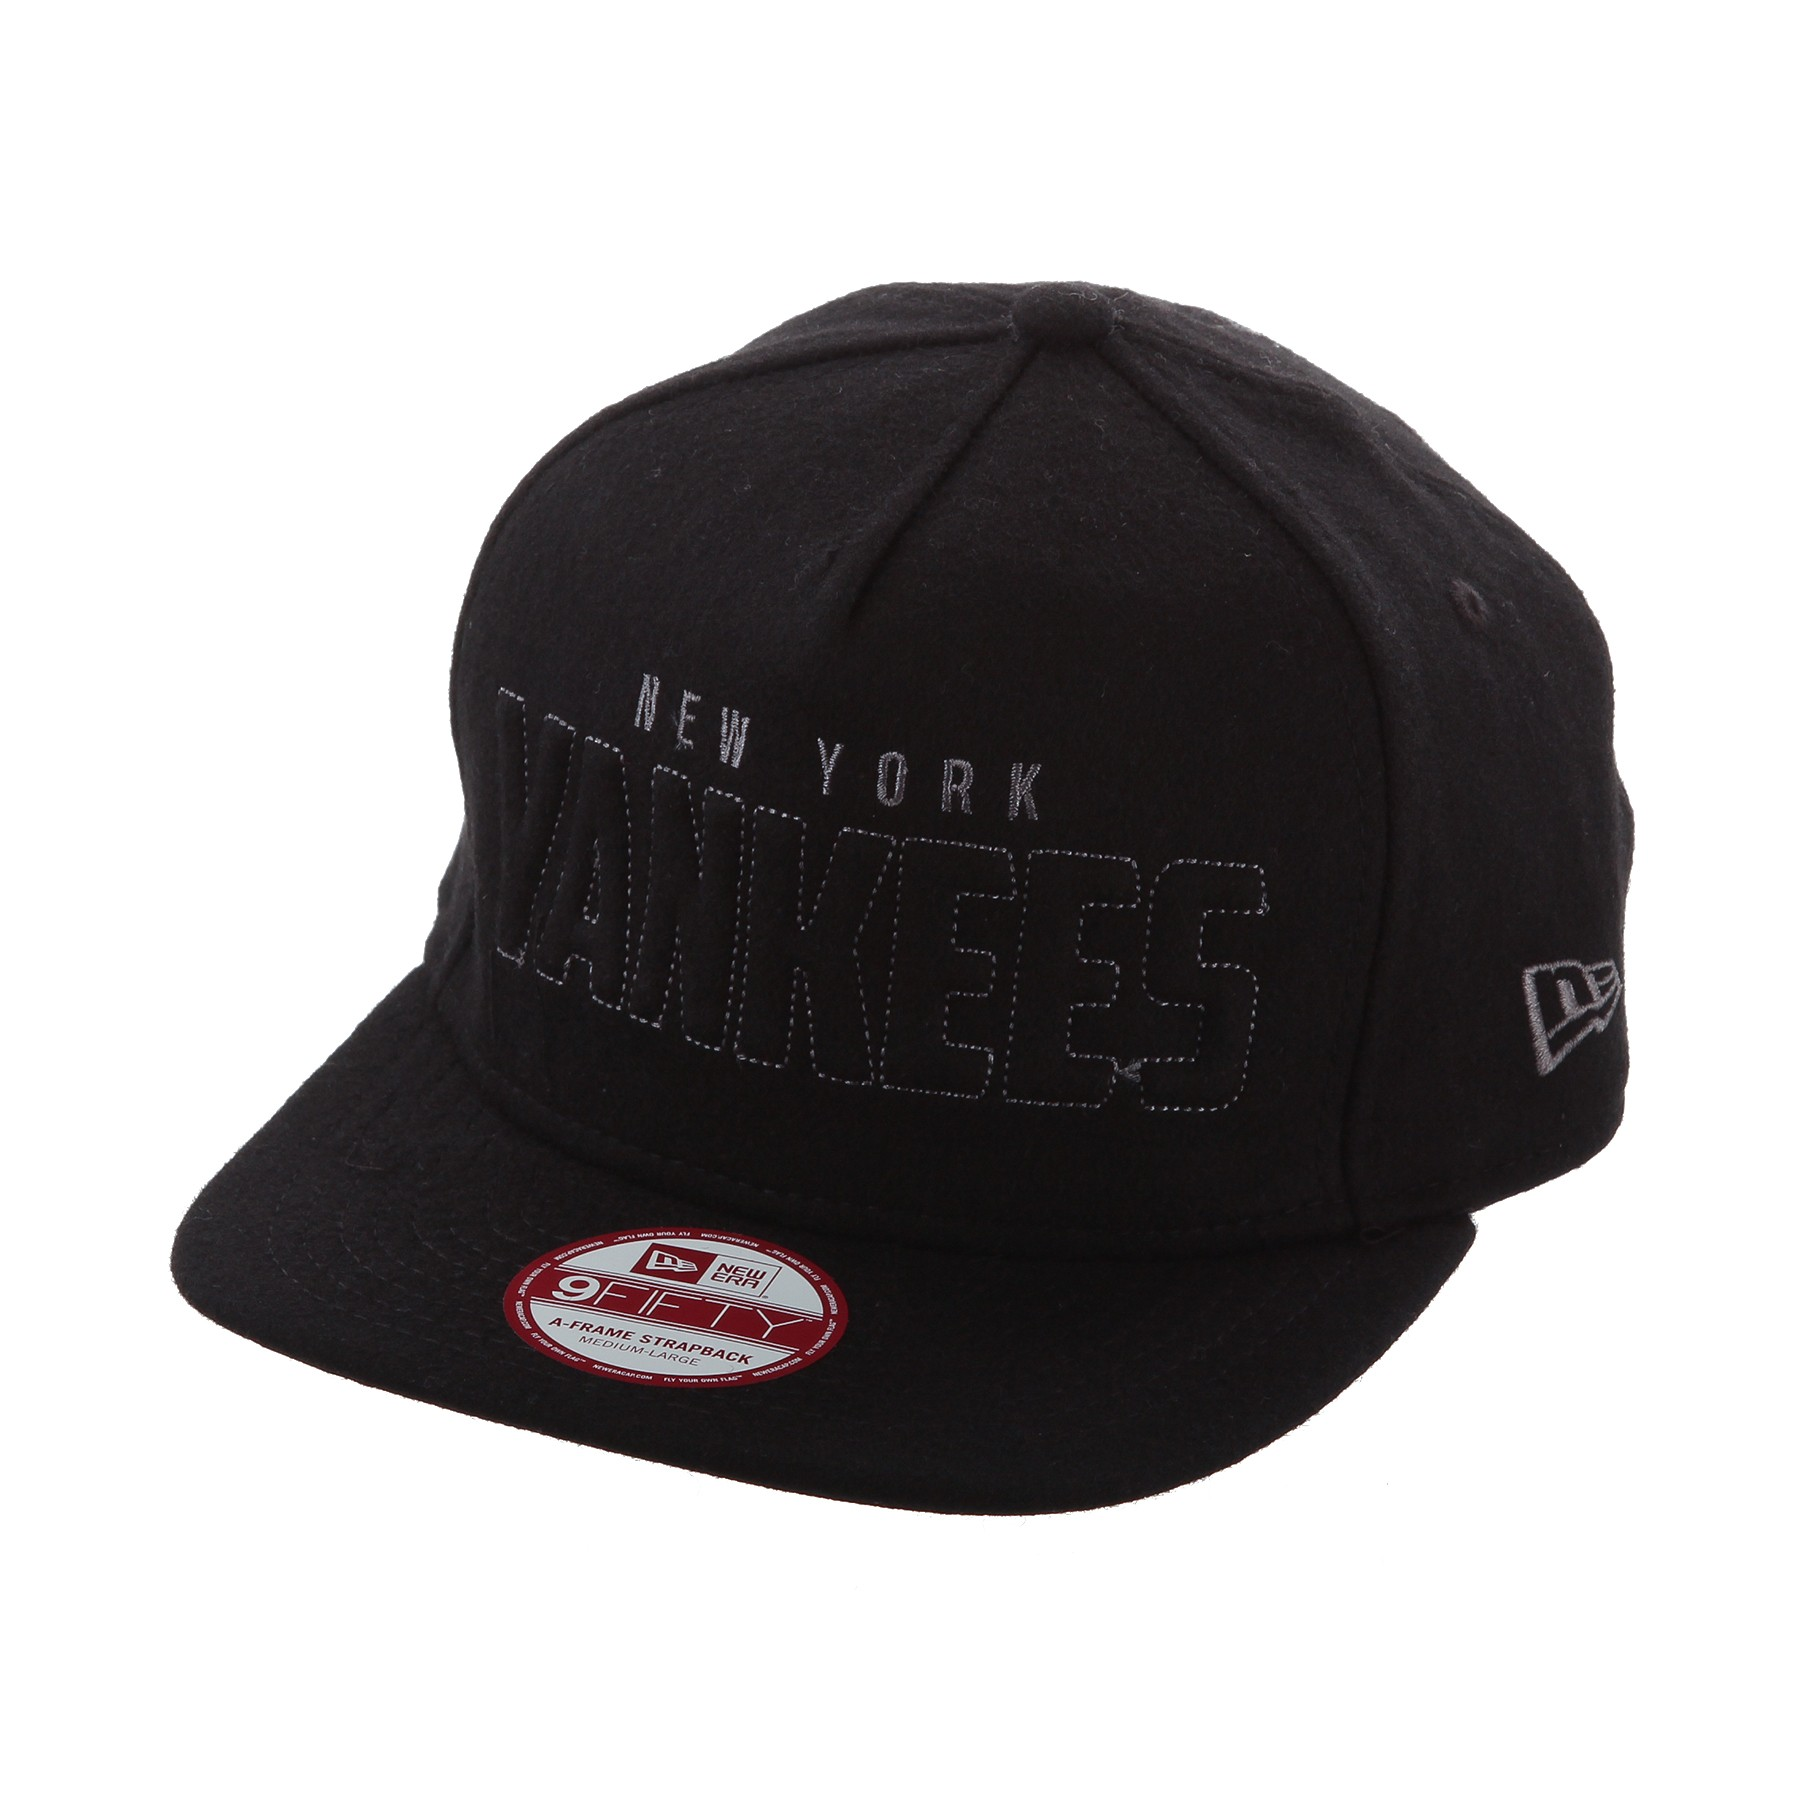 NEW ERA 9Fifty, Snapback Cap, schwarz  Bild https://cdn03.plentymarkets.com/zsy4vjx32p87/item/images/4960/full/80102195-BLACK-ama-01.JPG